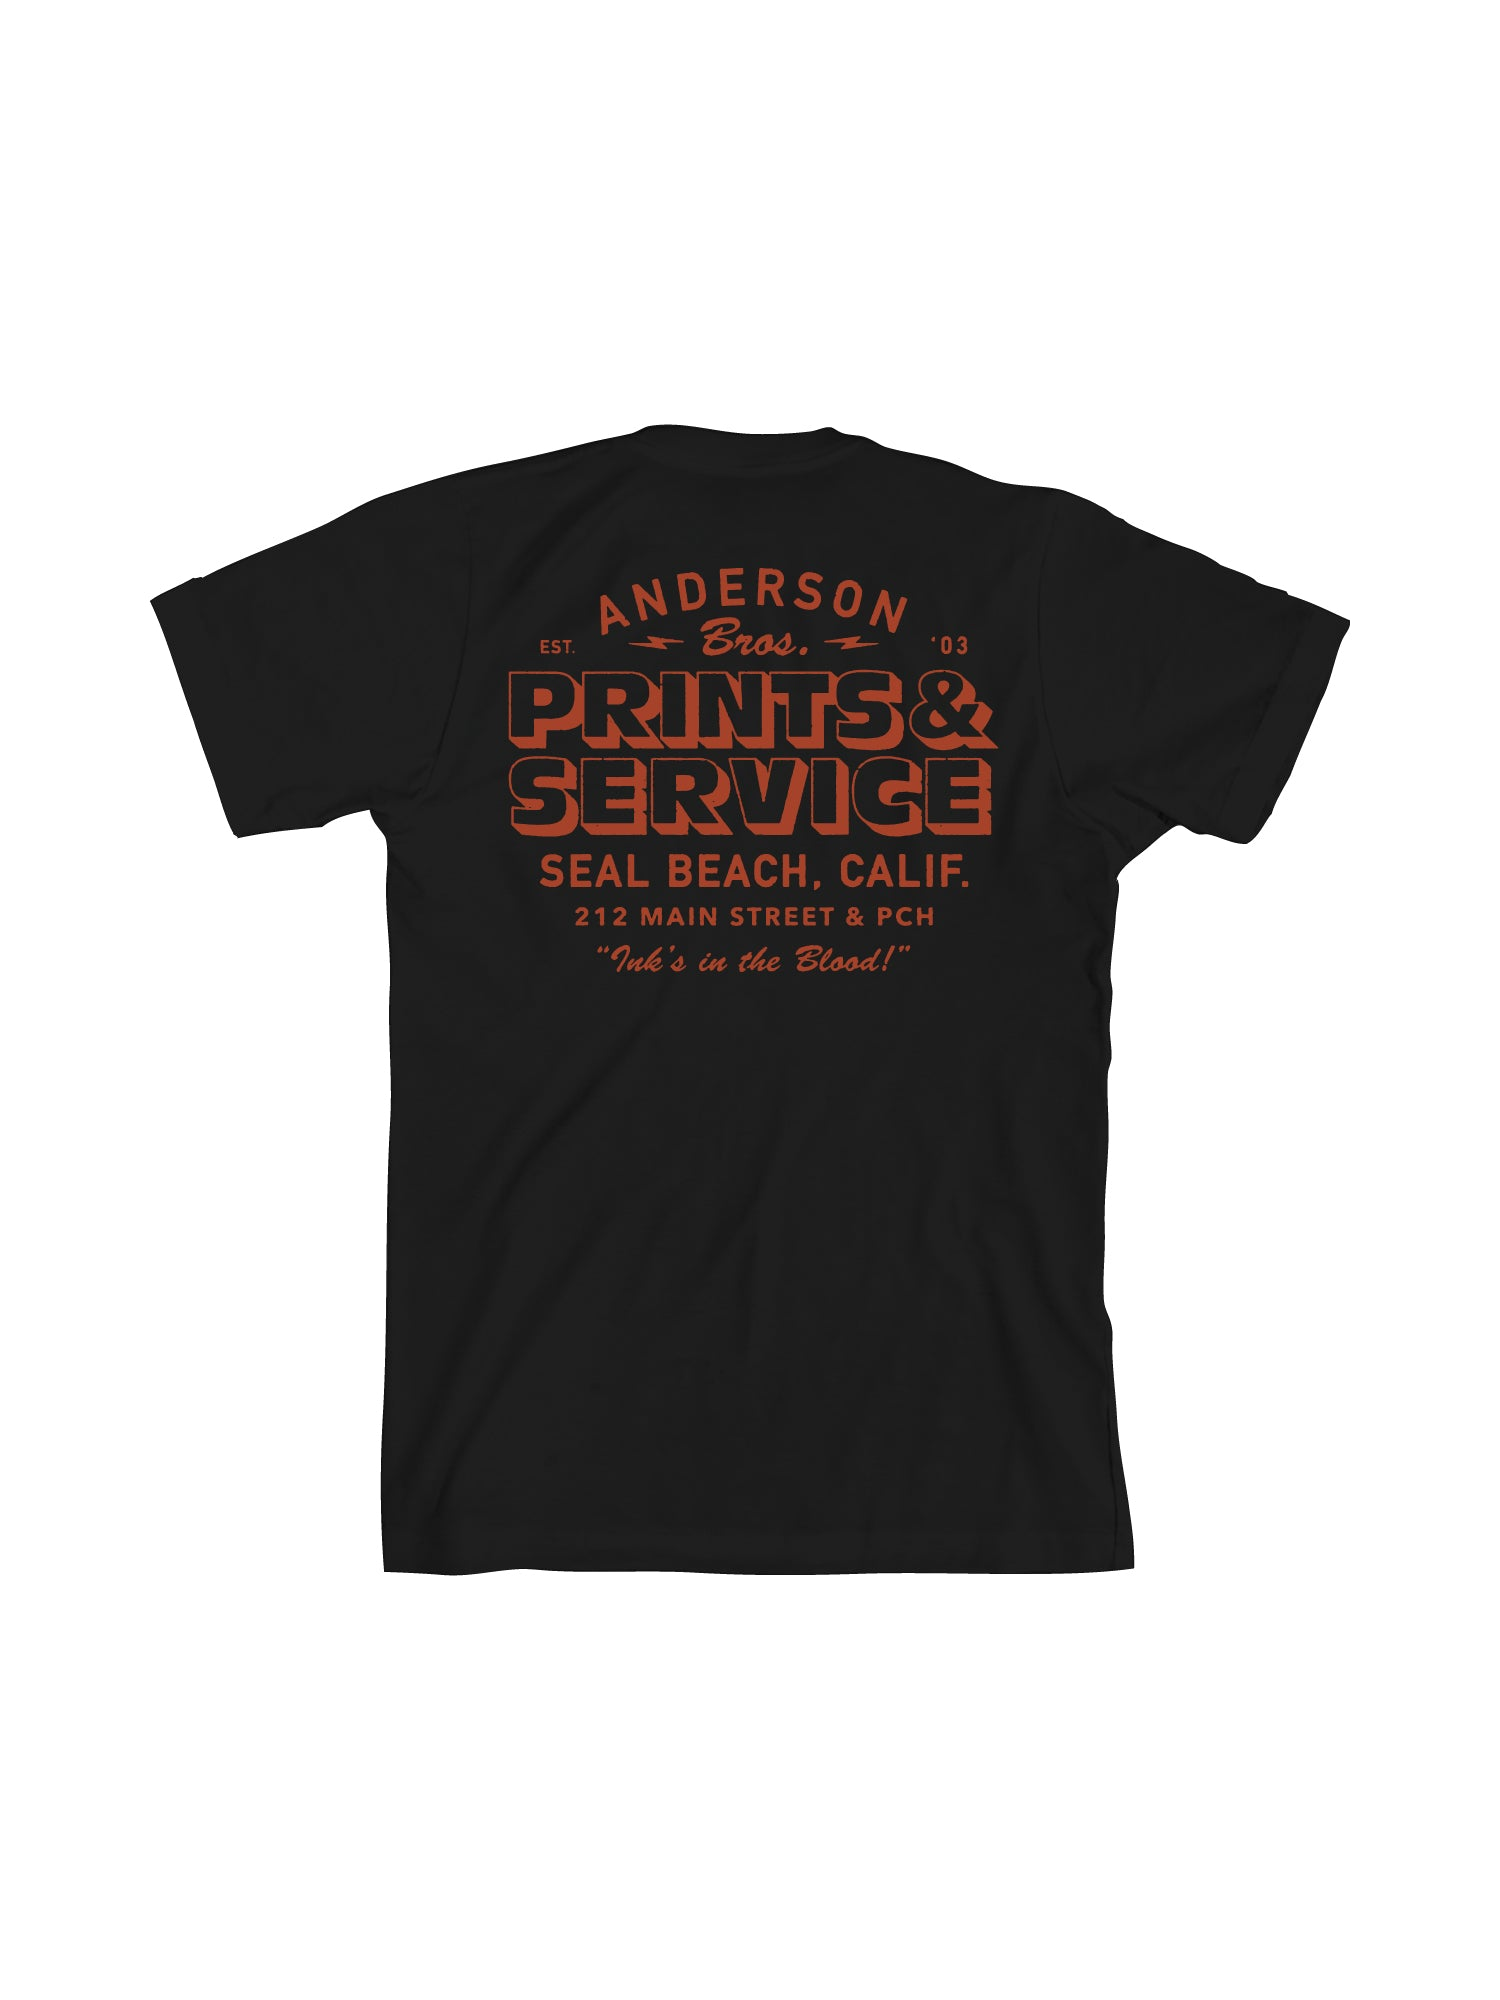 ANDERSON PRINTS & SERVICES - BLACK - Tankfarm & Co.